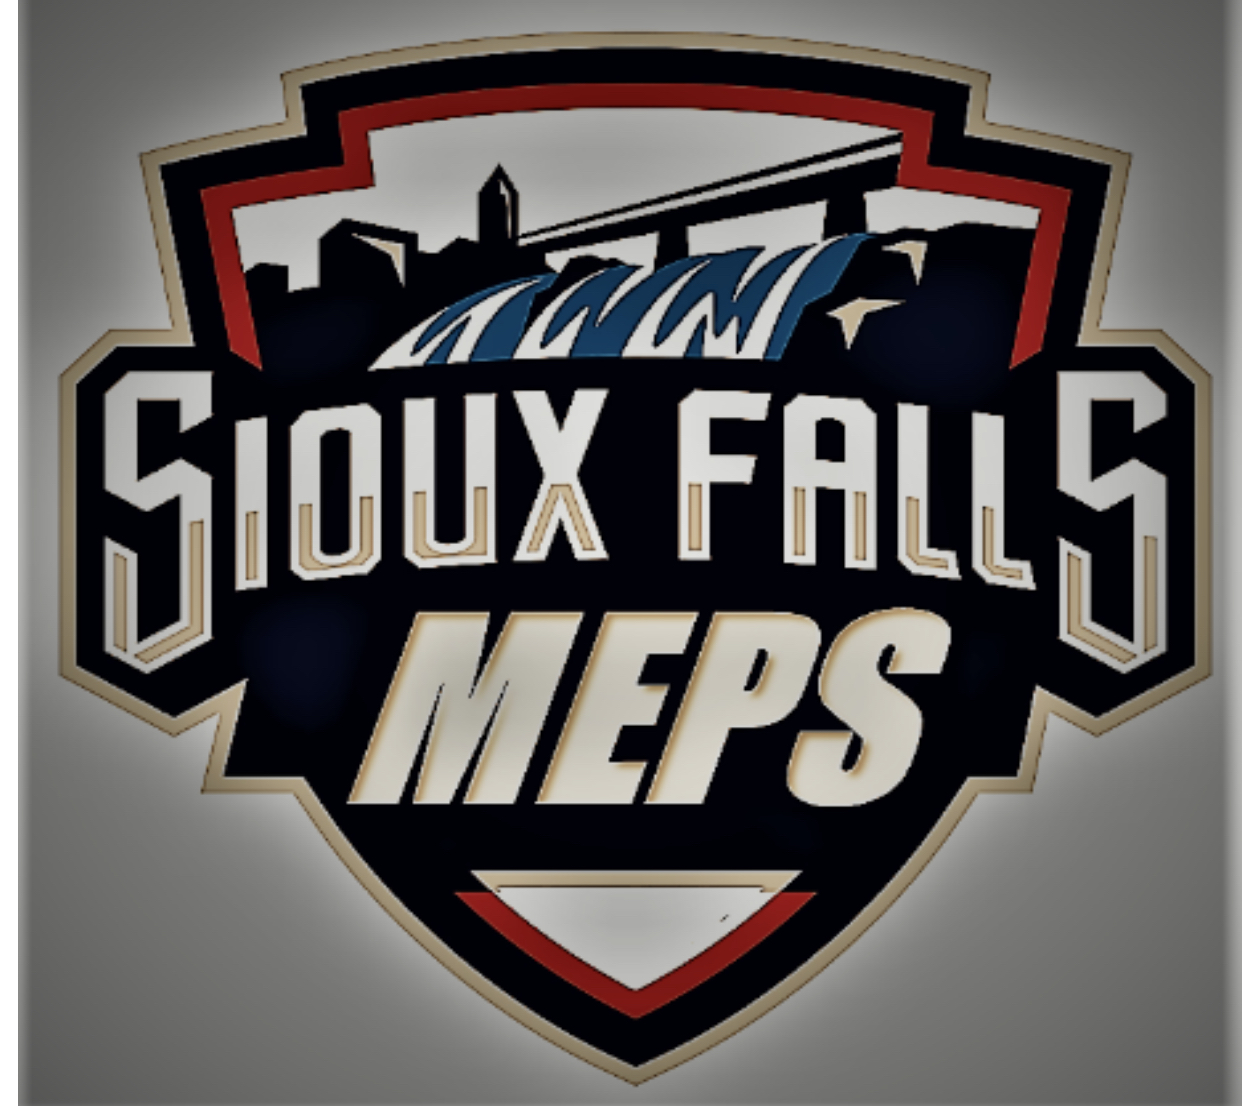 SIOUX FALLS MEPS DECAL